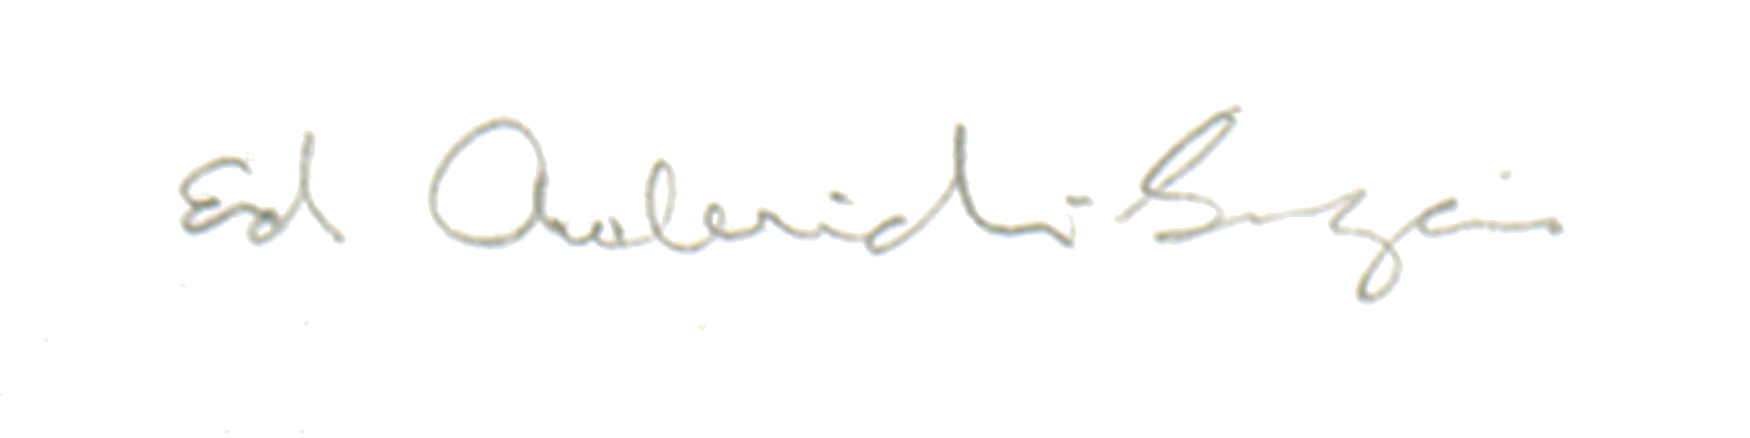 EAS_Signature.png